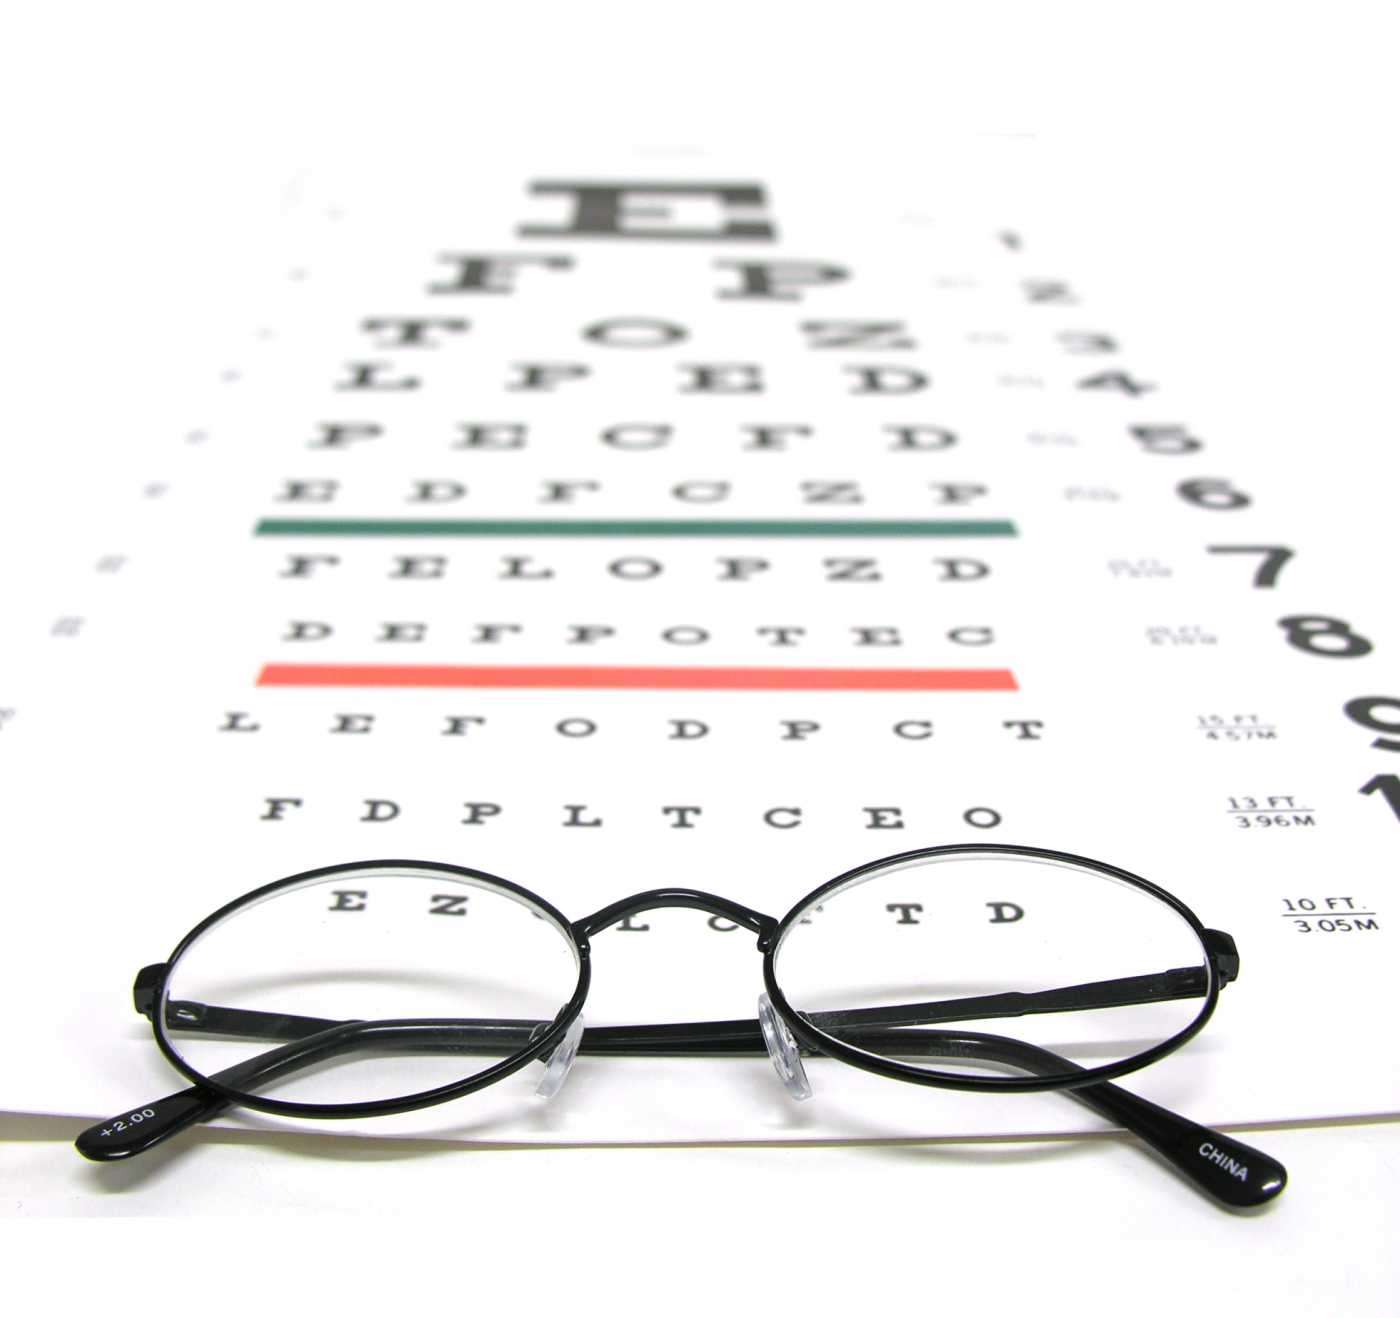 Photo.Medical.an eye test vision chart.SS752553.color.HiRes